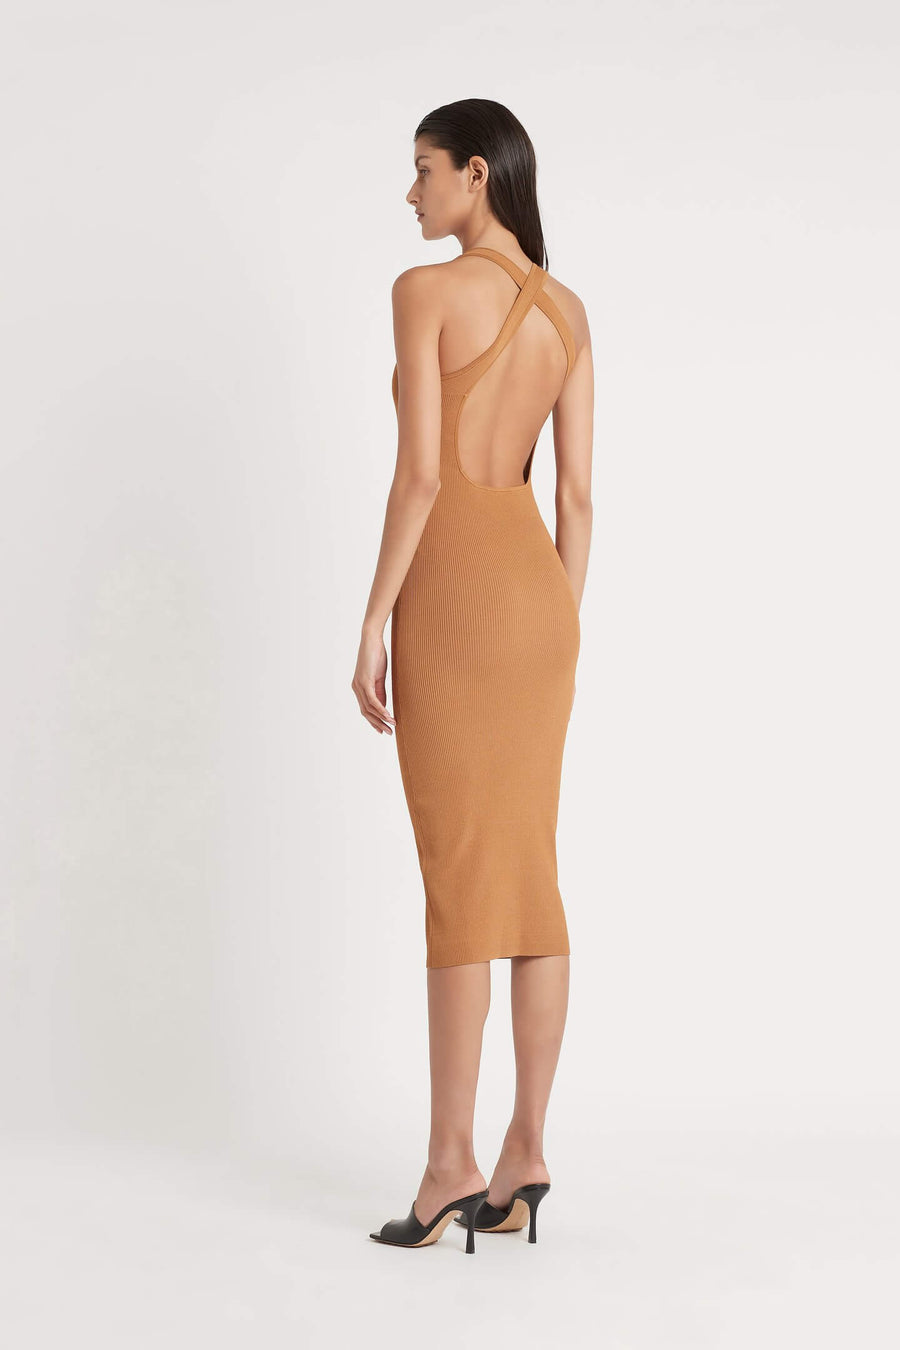 SIR Jasper Cut Out Women's Sleeveless Midi Dress | The New Trend